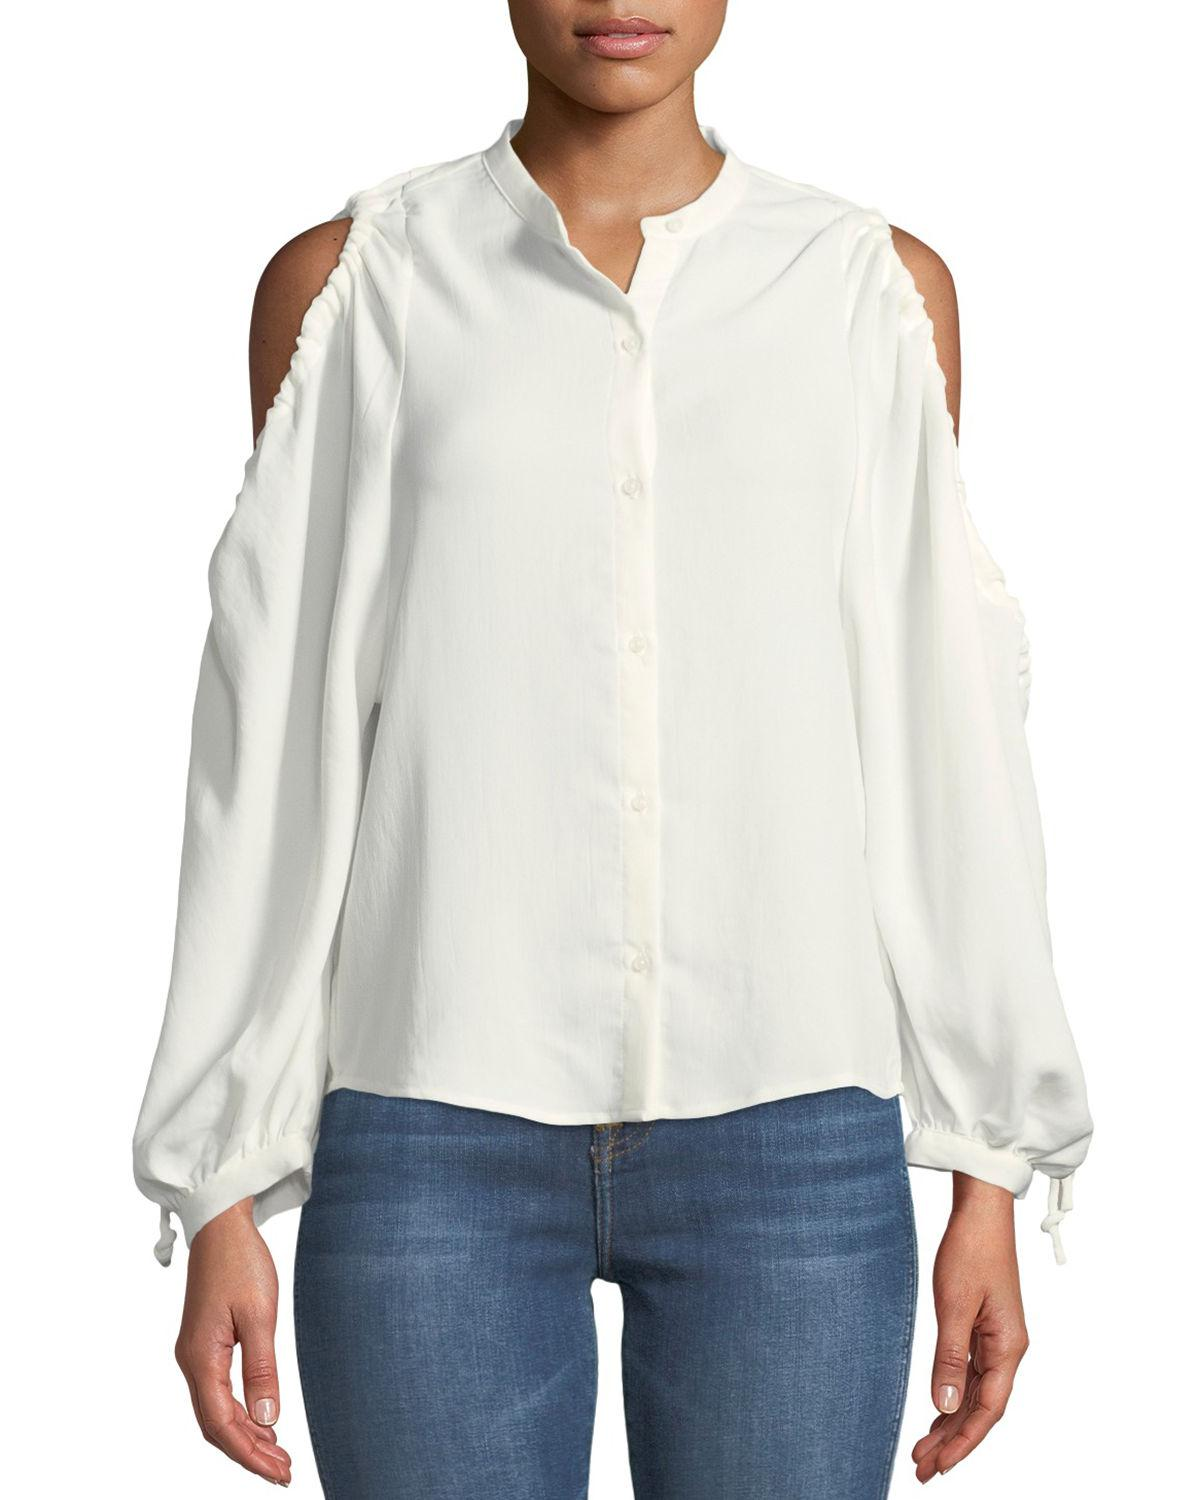 01ecfe24fb8397 7 For All Mankind. Women s White Button-down Cold-shoulder Top.  159 From Neiman  Marcus ...